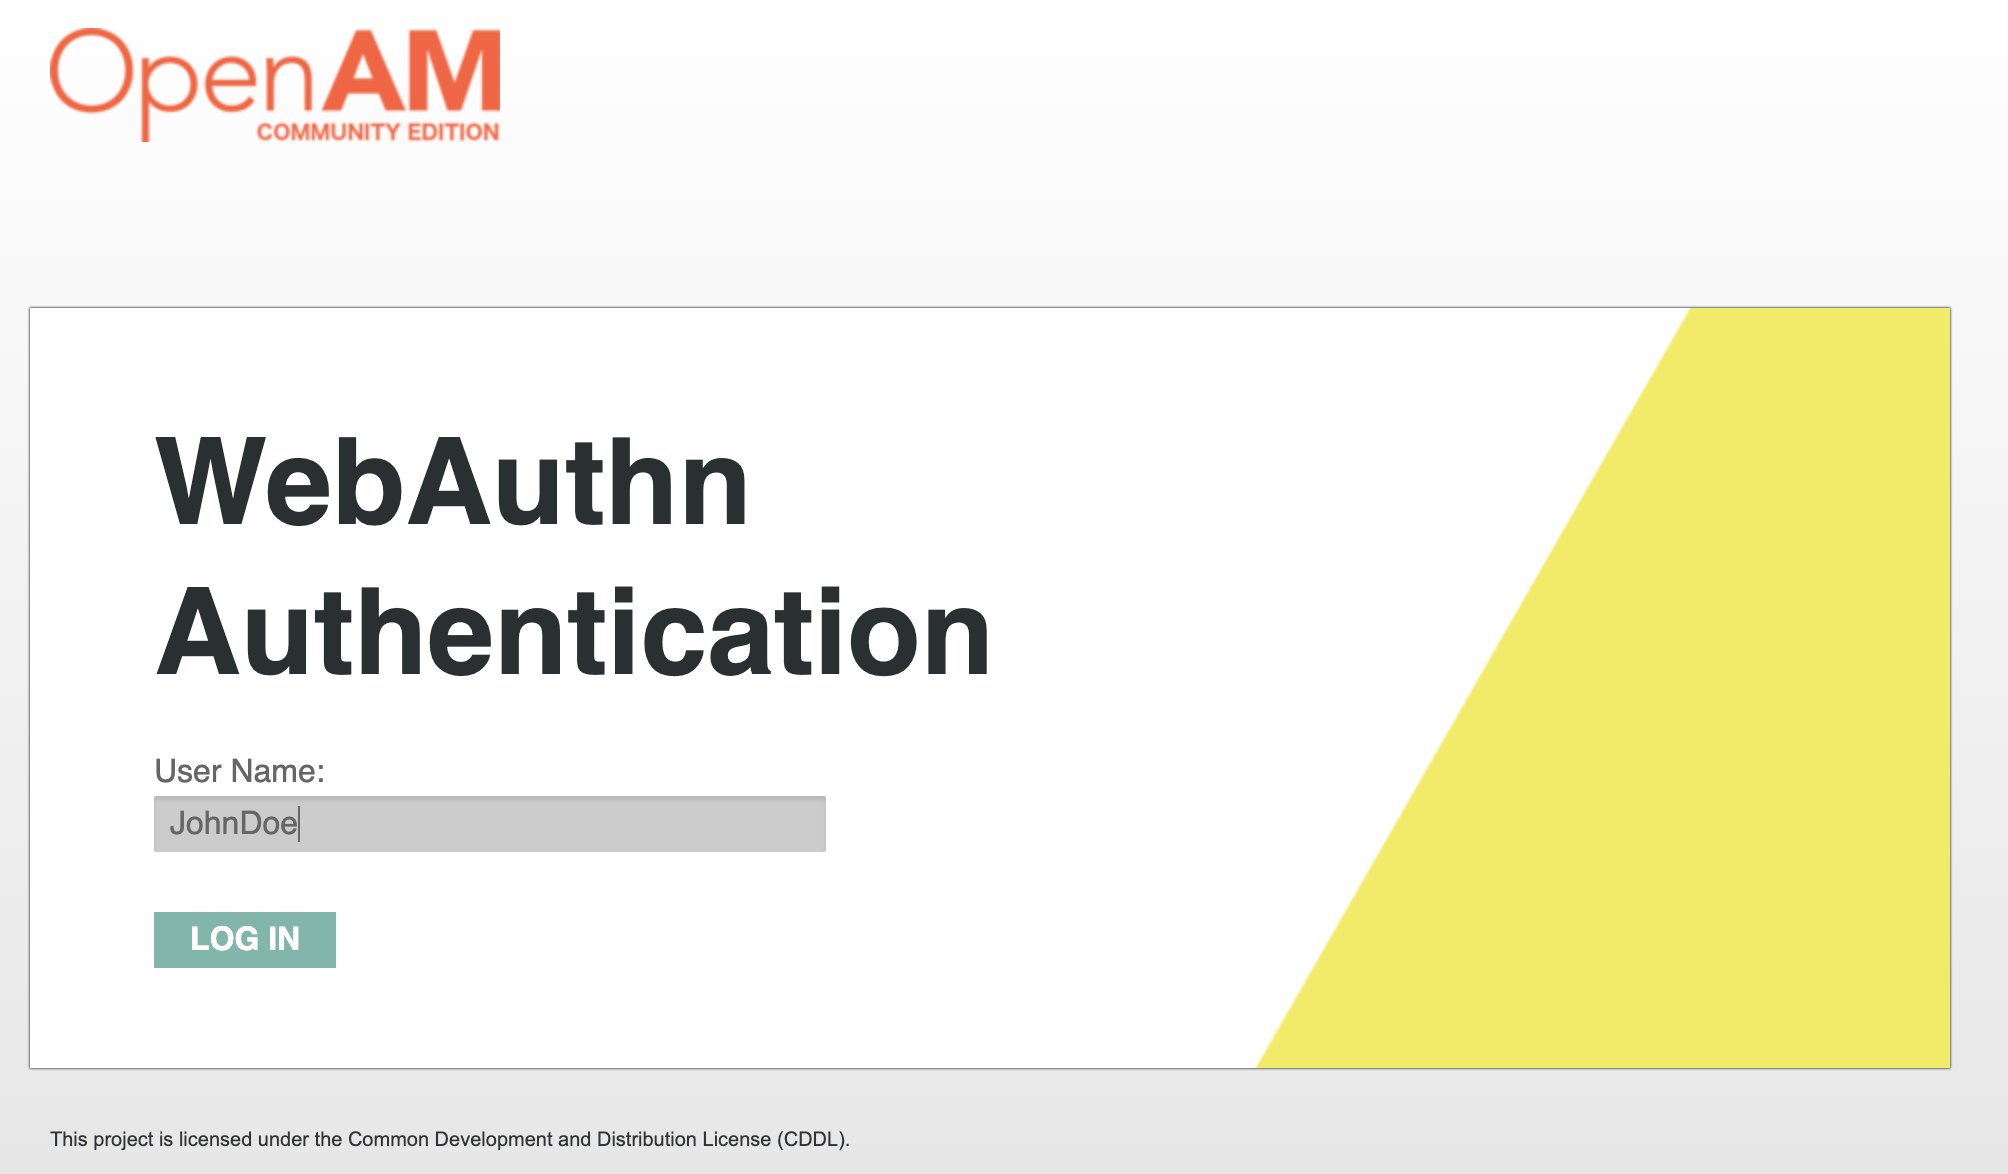 OpenAM  WebAuthn Authentication User Name